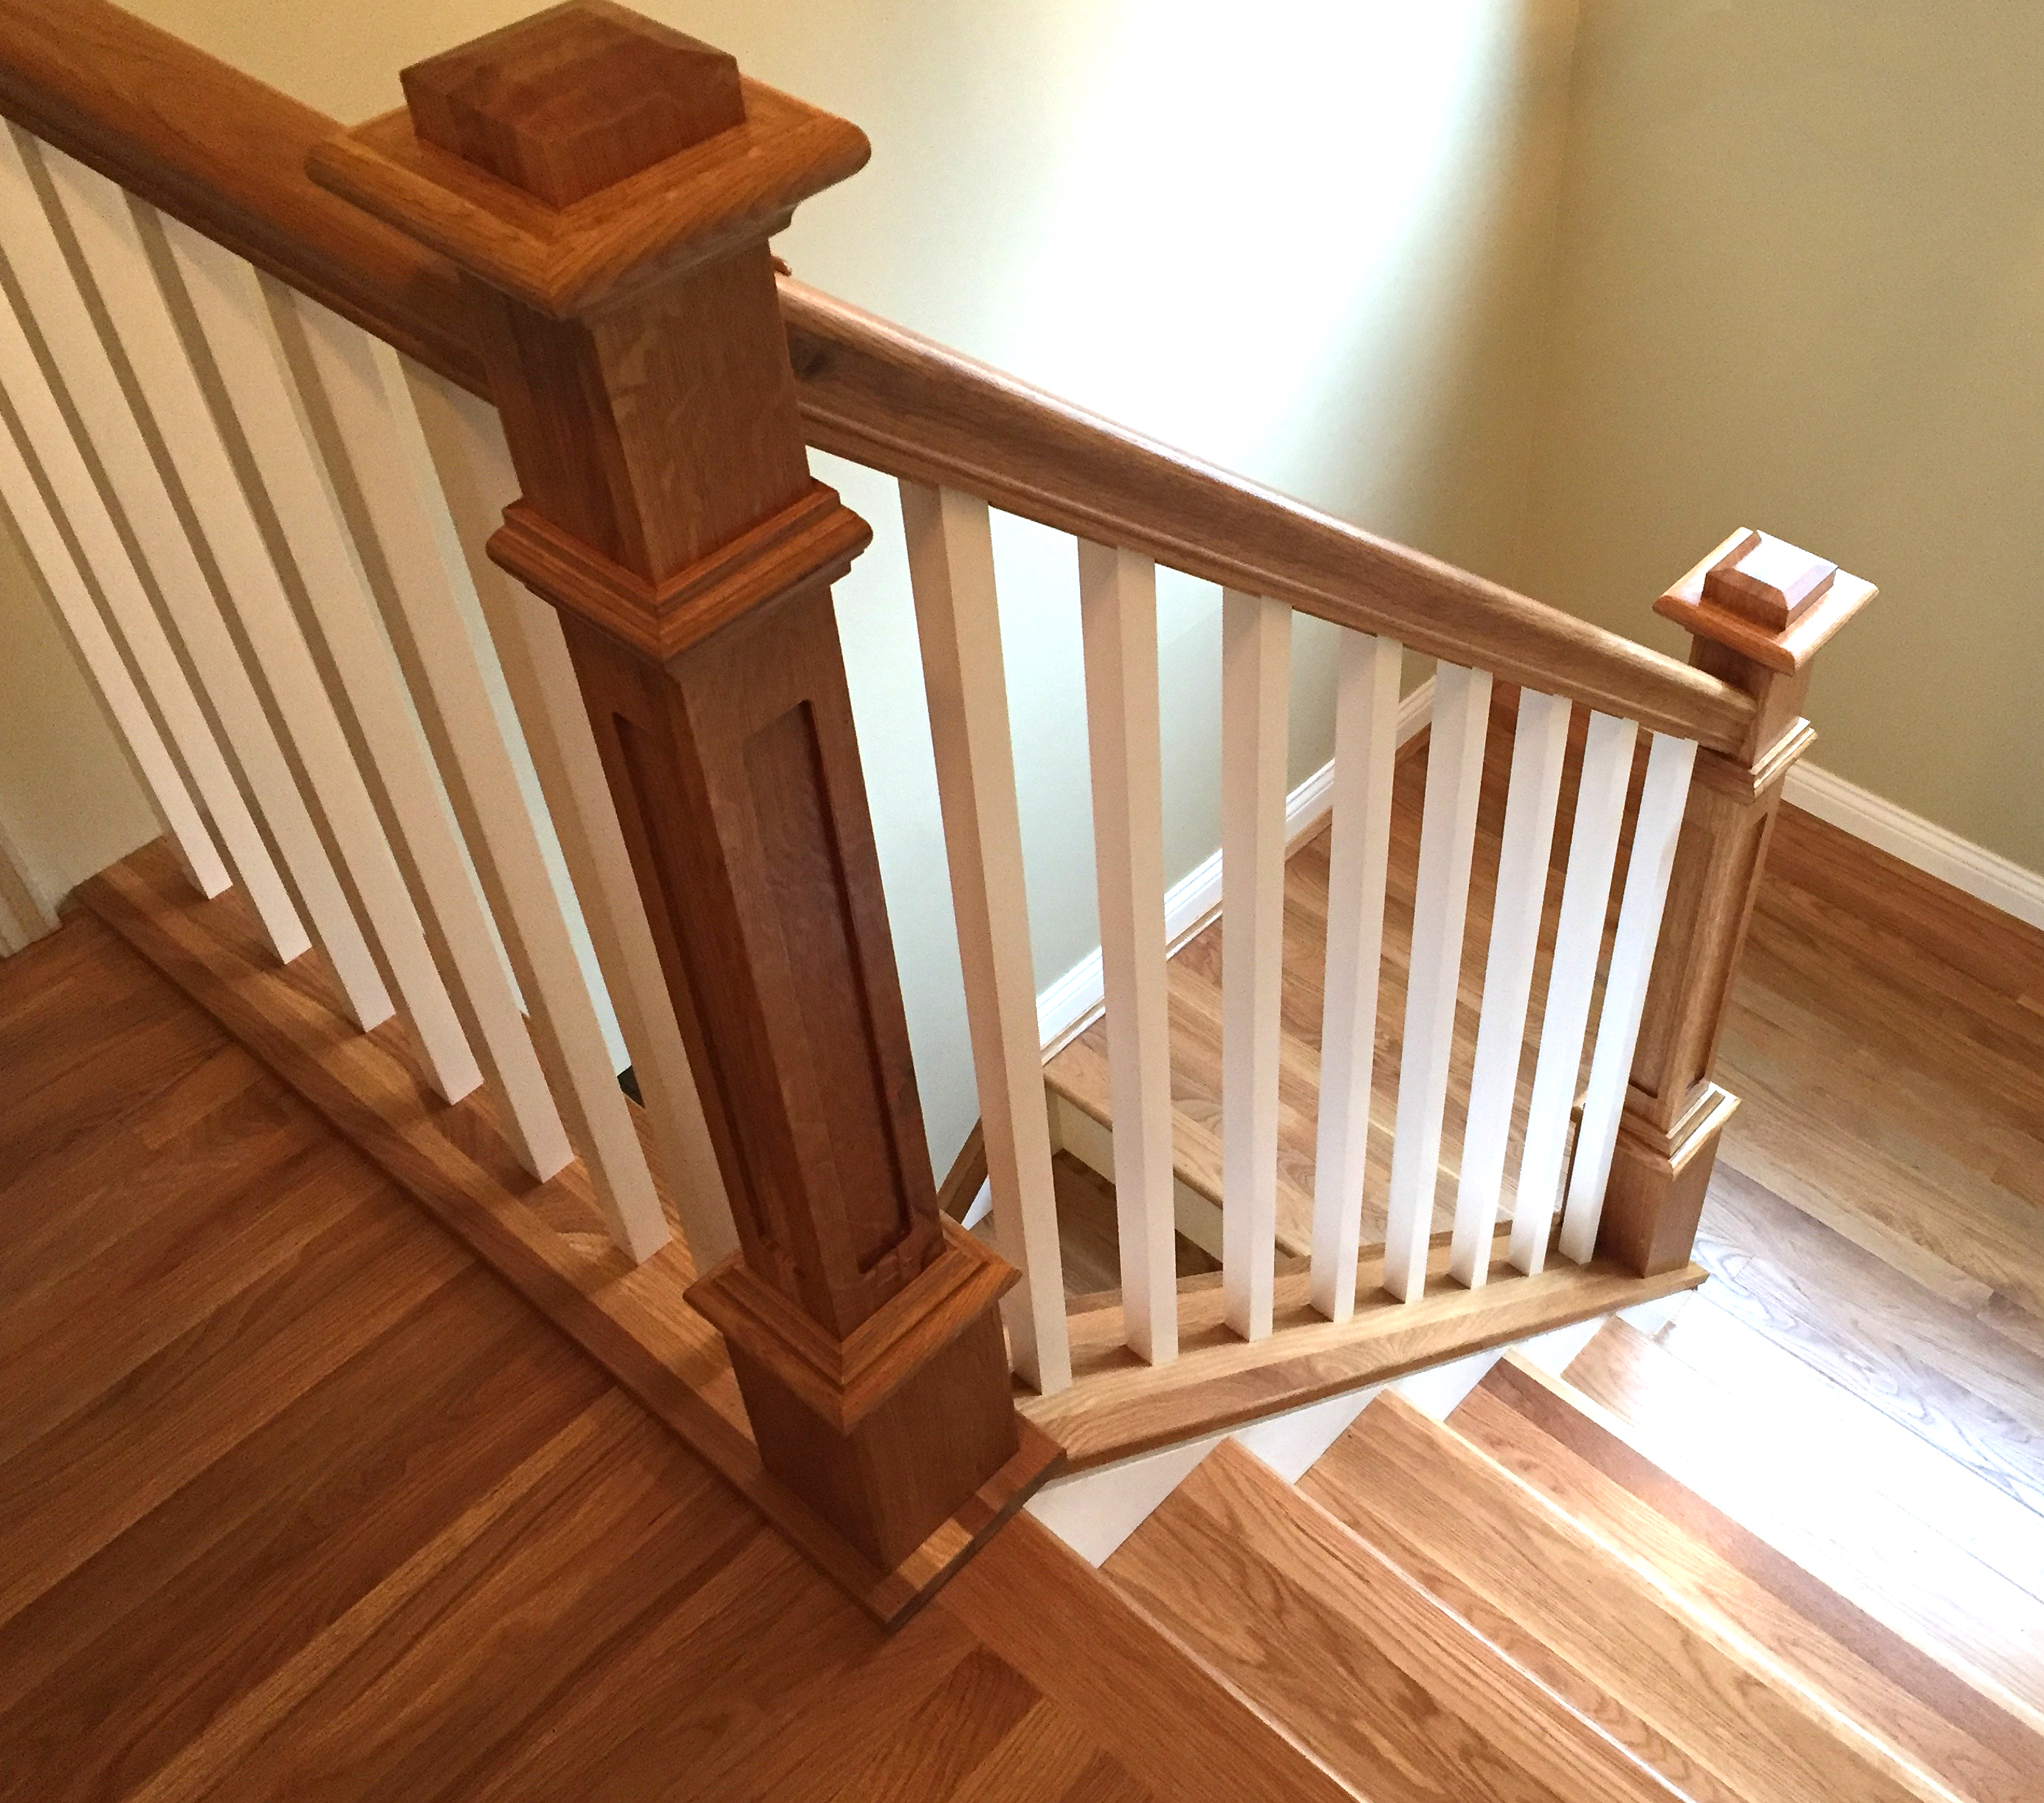 Exceptionnel Imported Primed Balusters